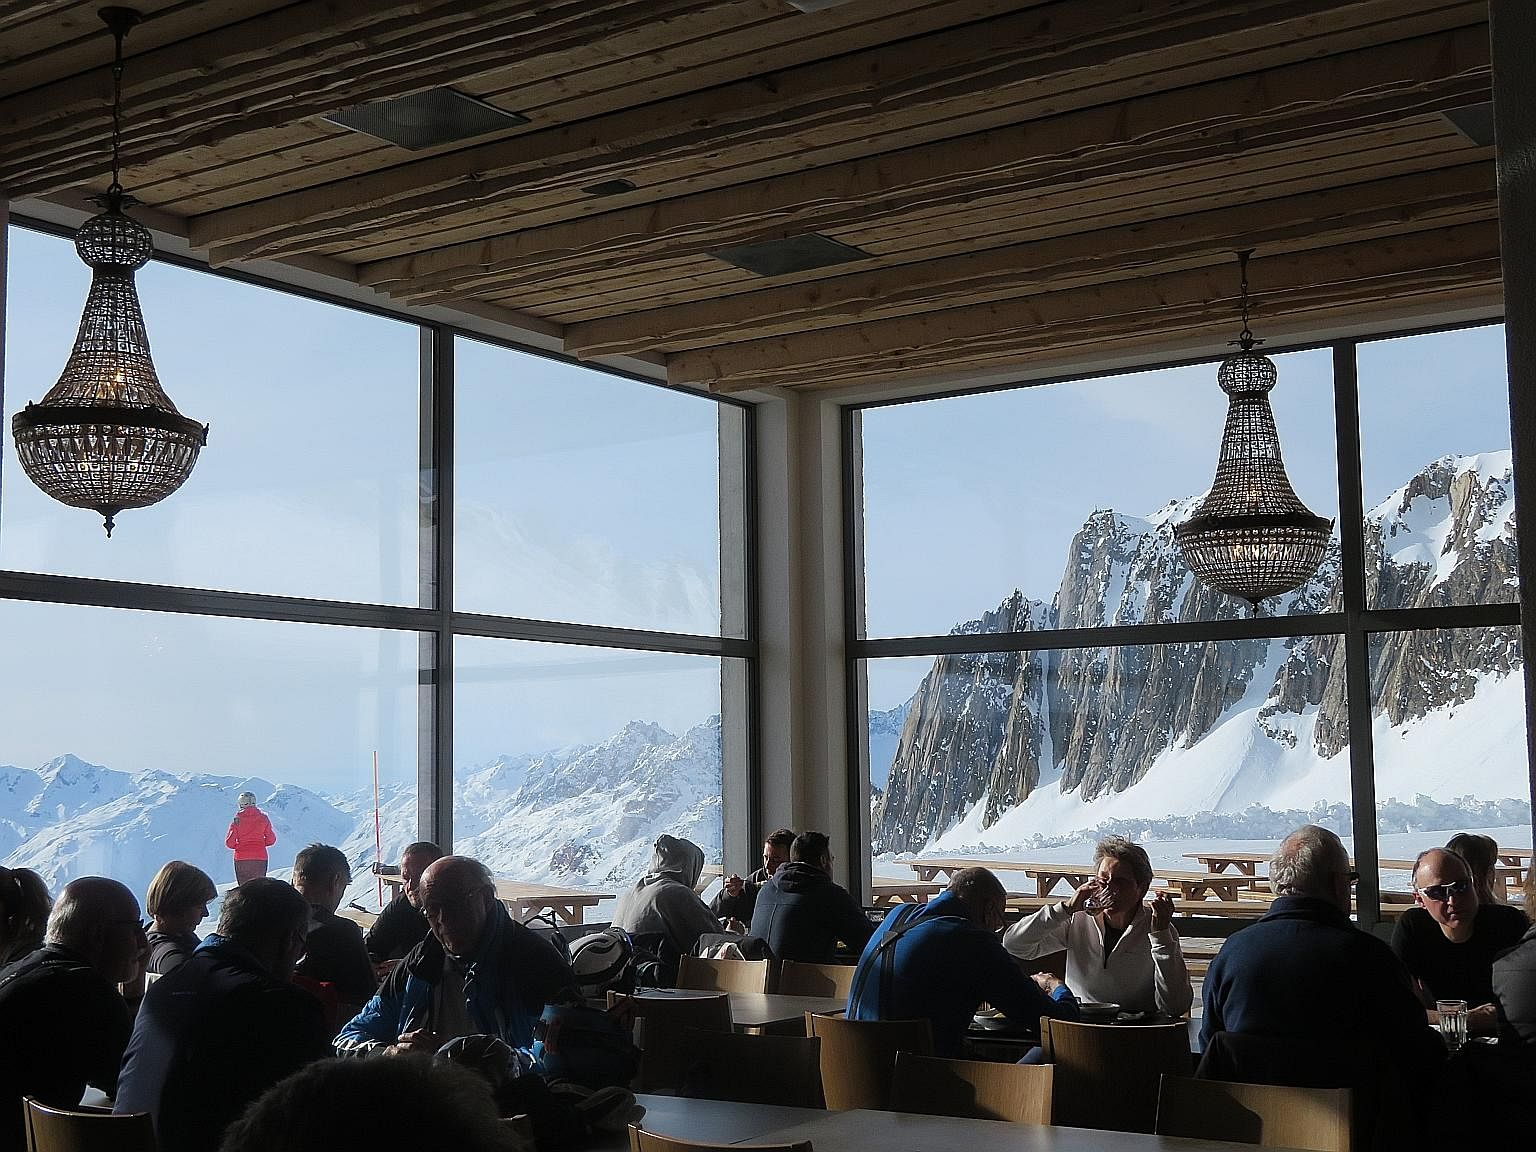 An eatery at Schneehuenerstock, where visitors can dine with a view of the sprawling Swiss Alps outside.